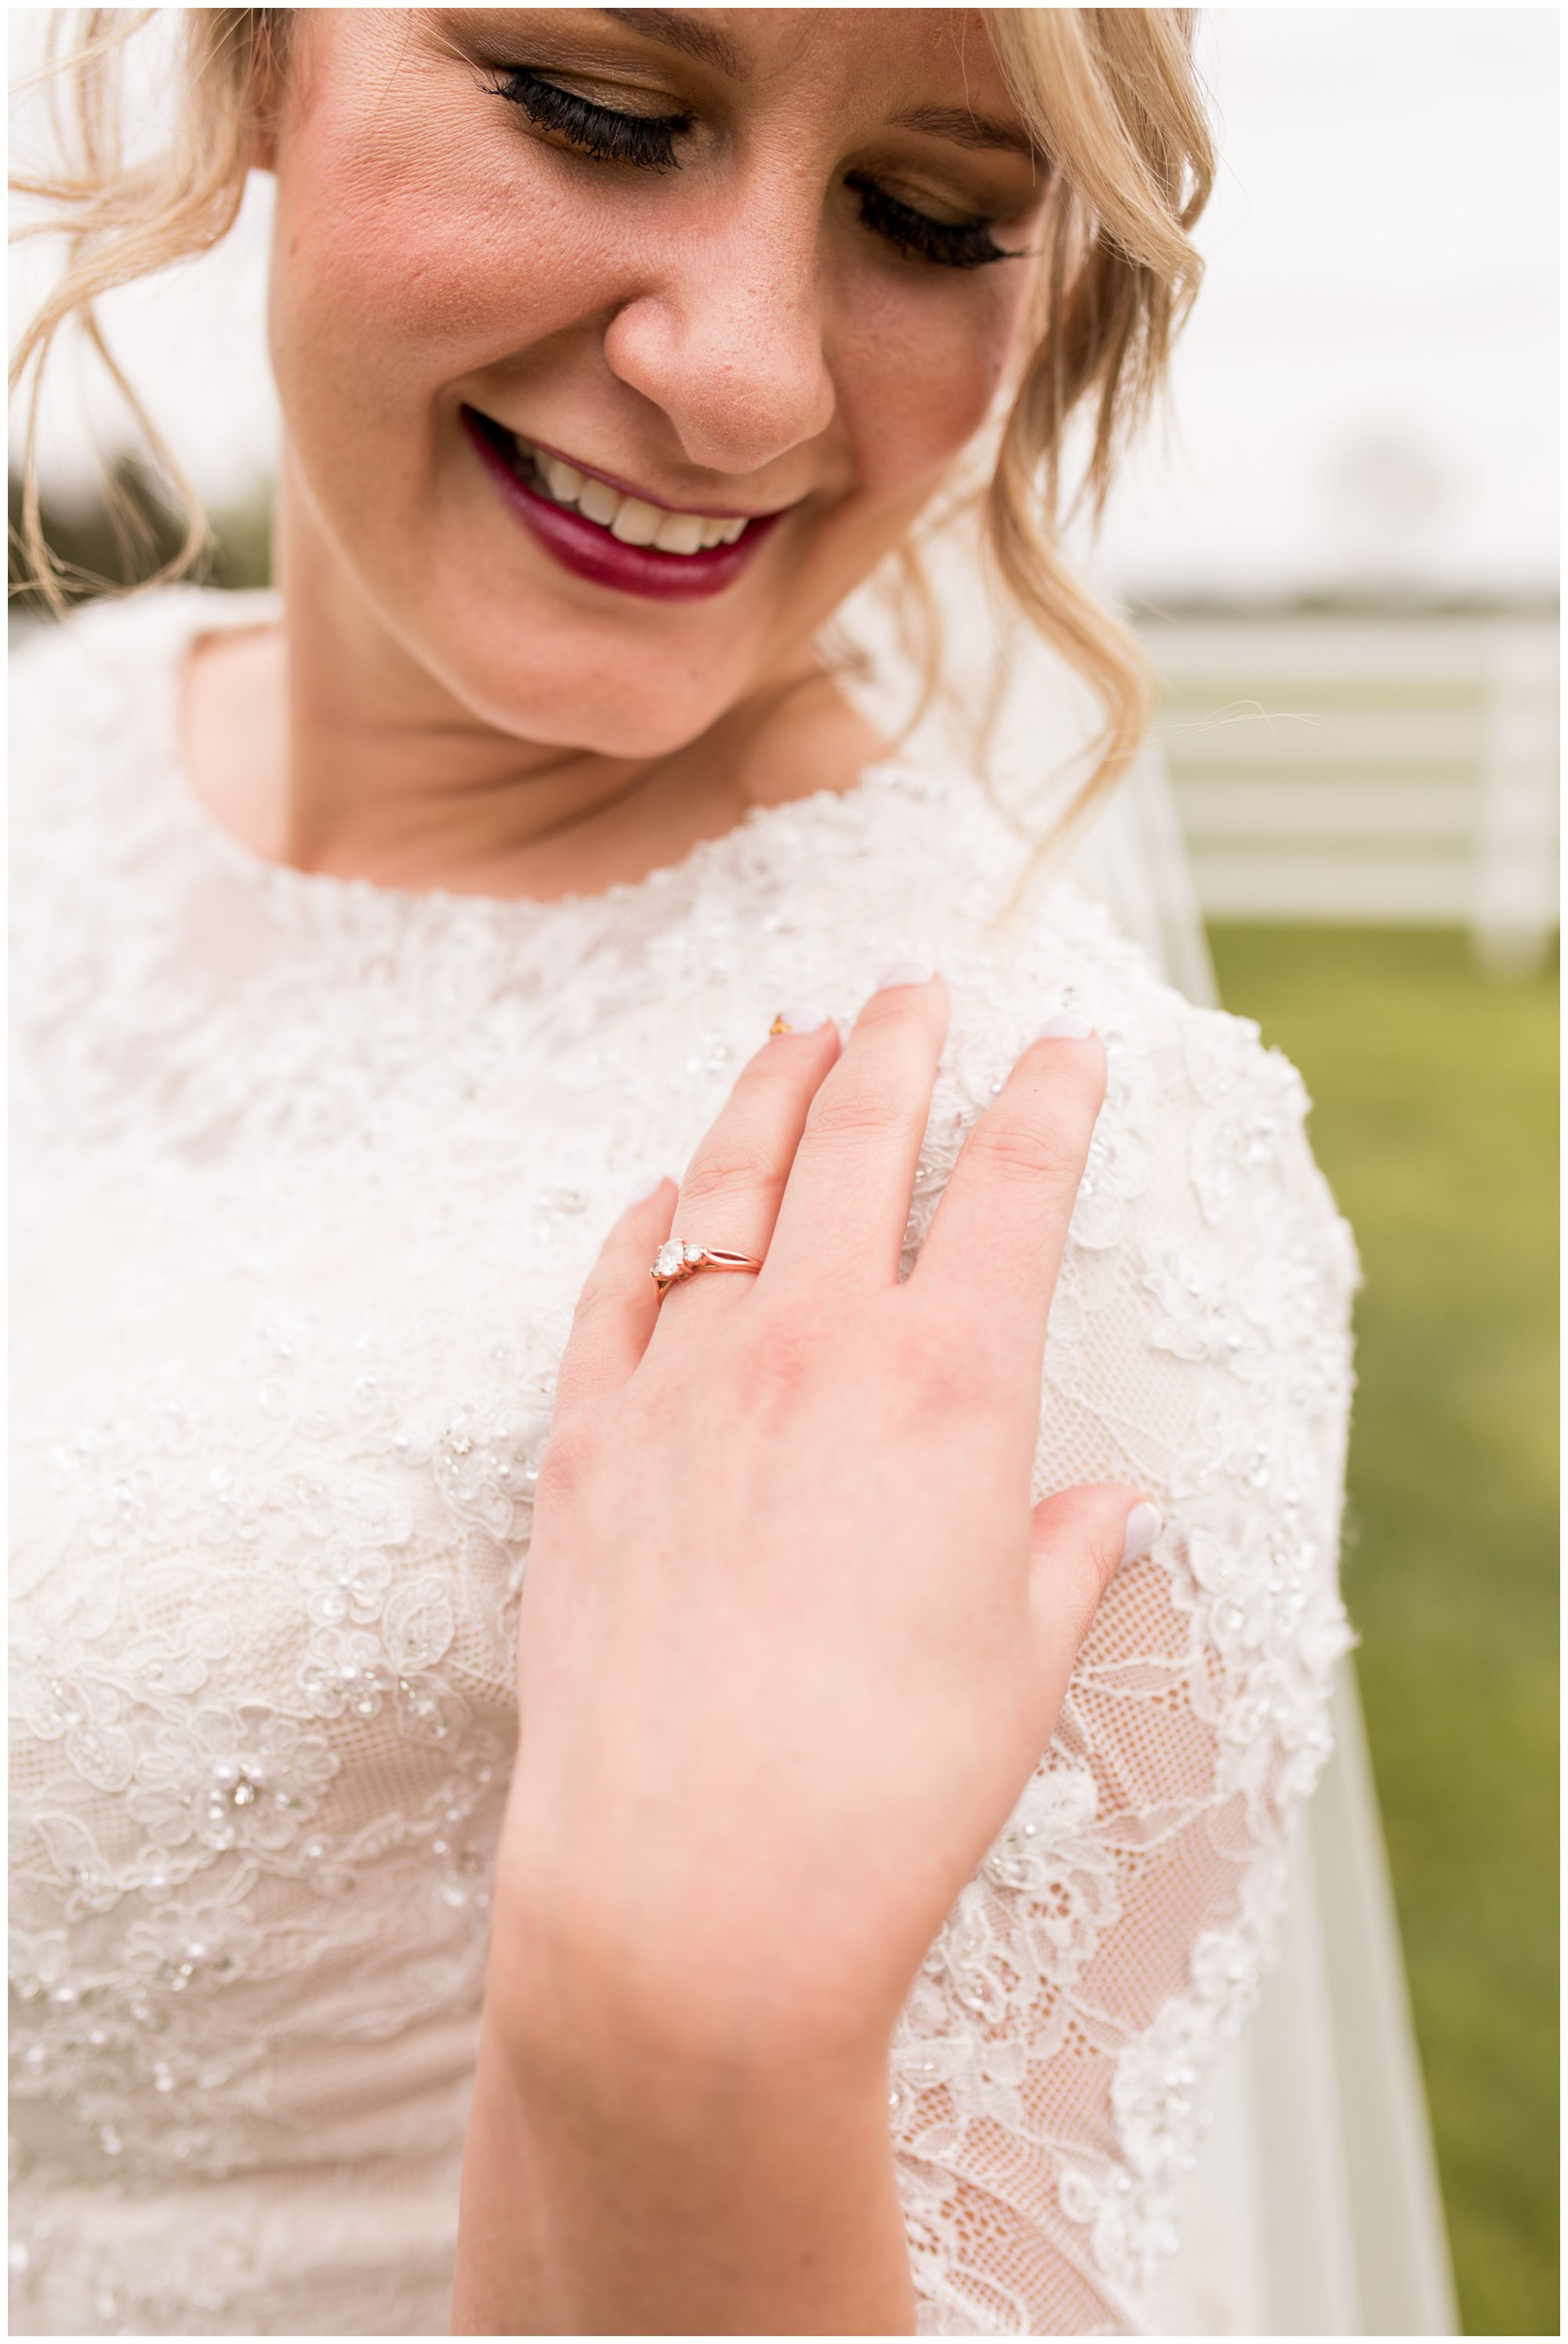 close up on bride's engagement ring before wedding ceremony at Muncie First Church of the Nazarene